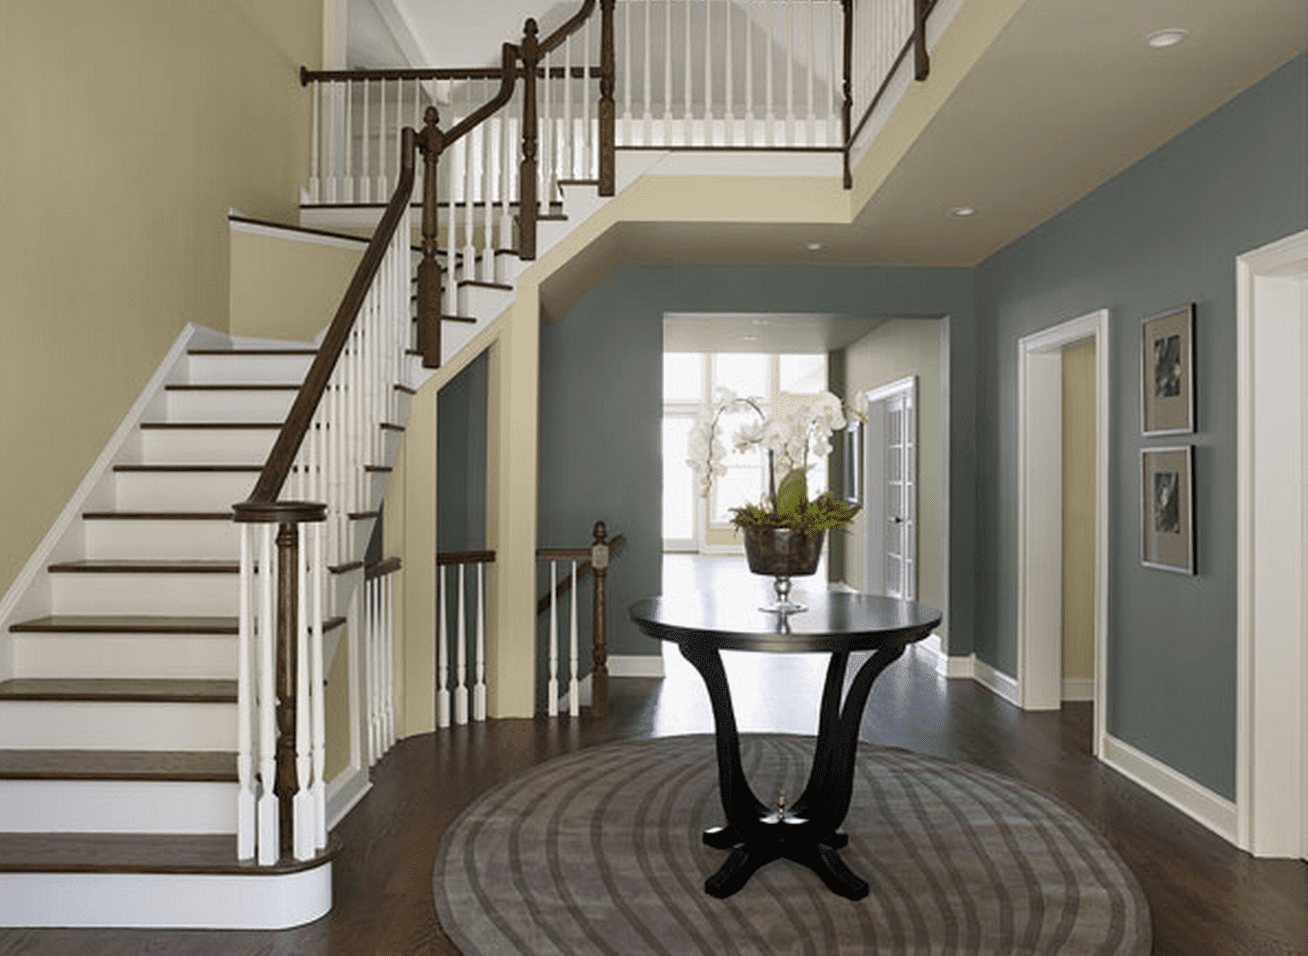 Top 7 cool paint colors from benjamin moore - Benjamin moore interior paint colors ...